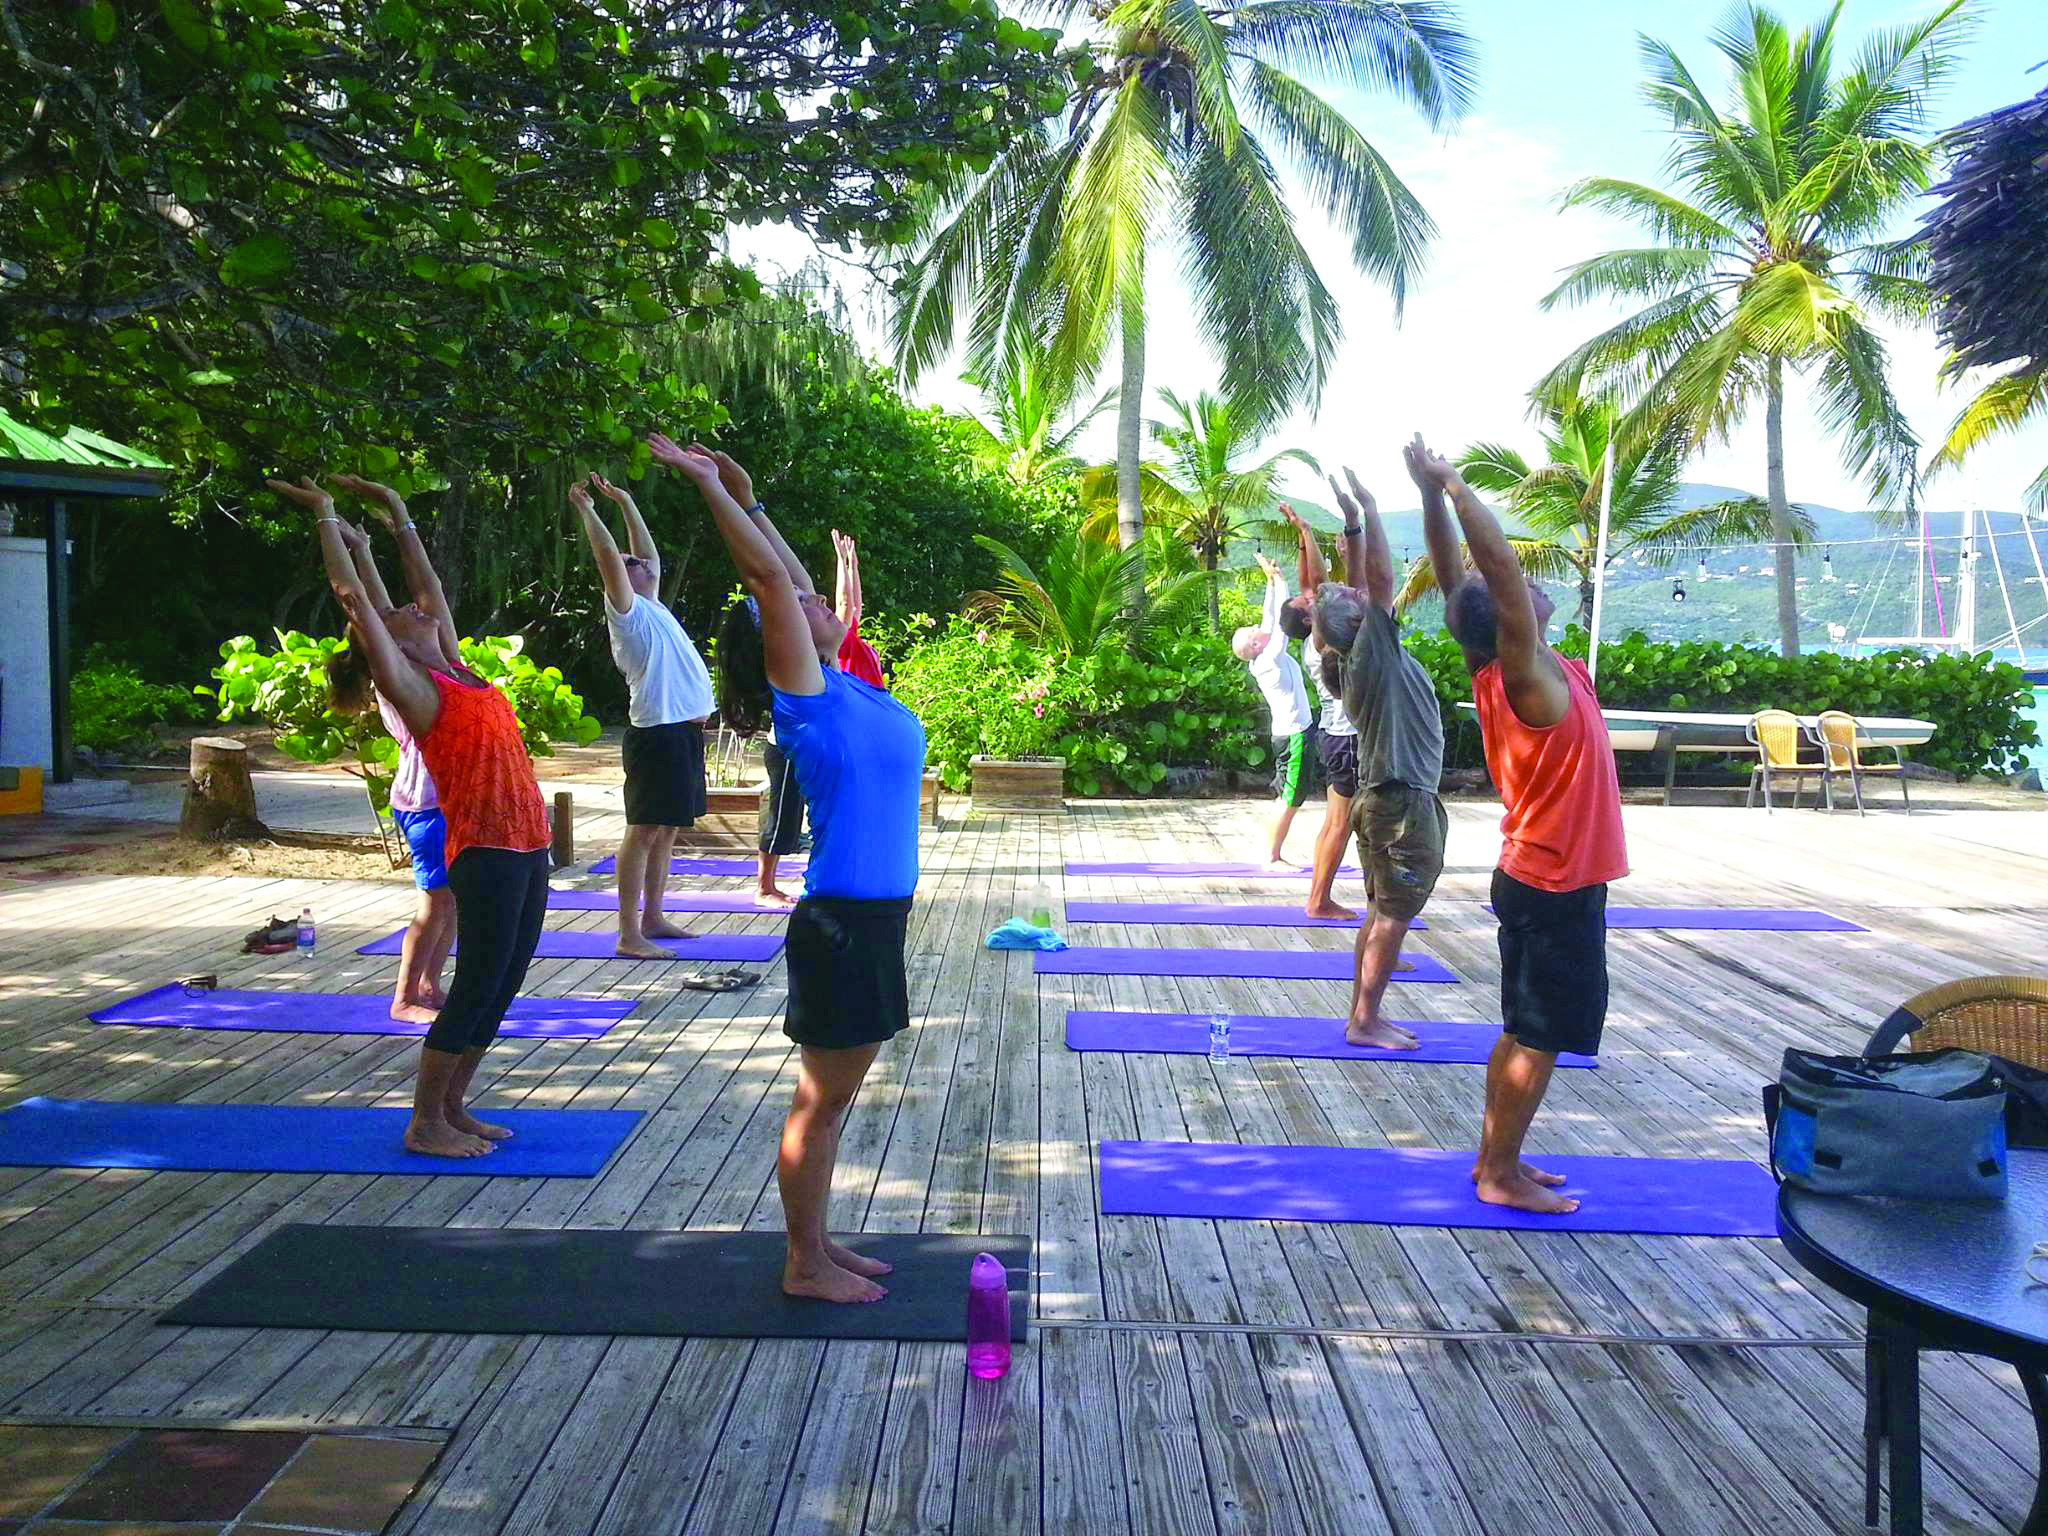 Sailors enjoying yoga in the BVI.